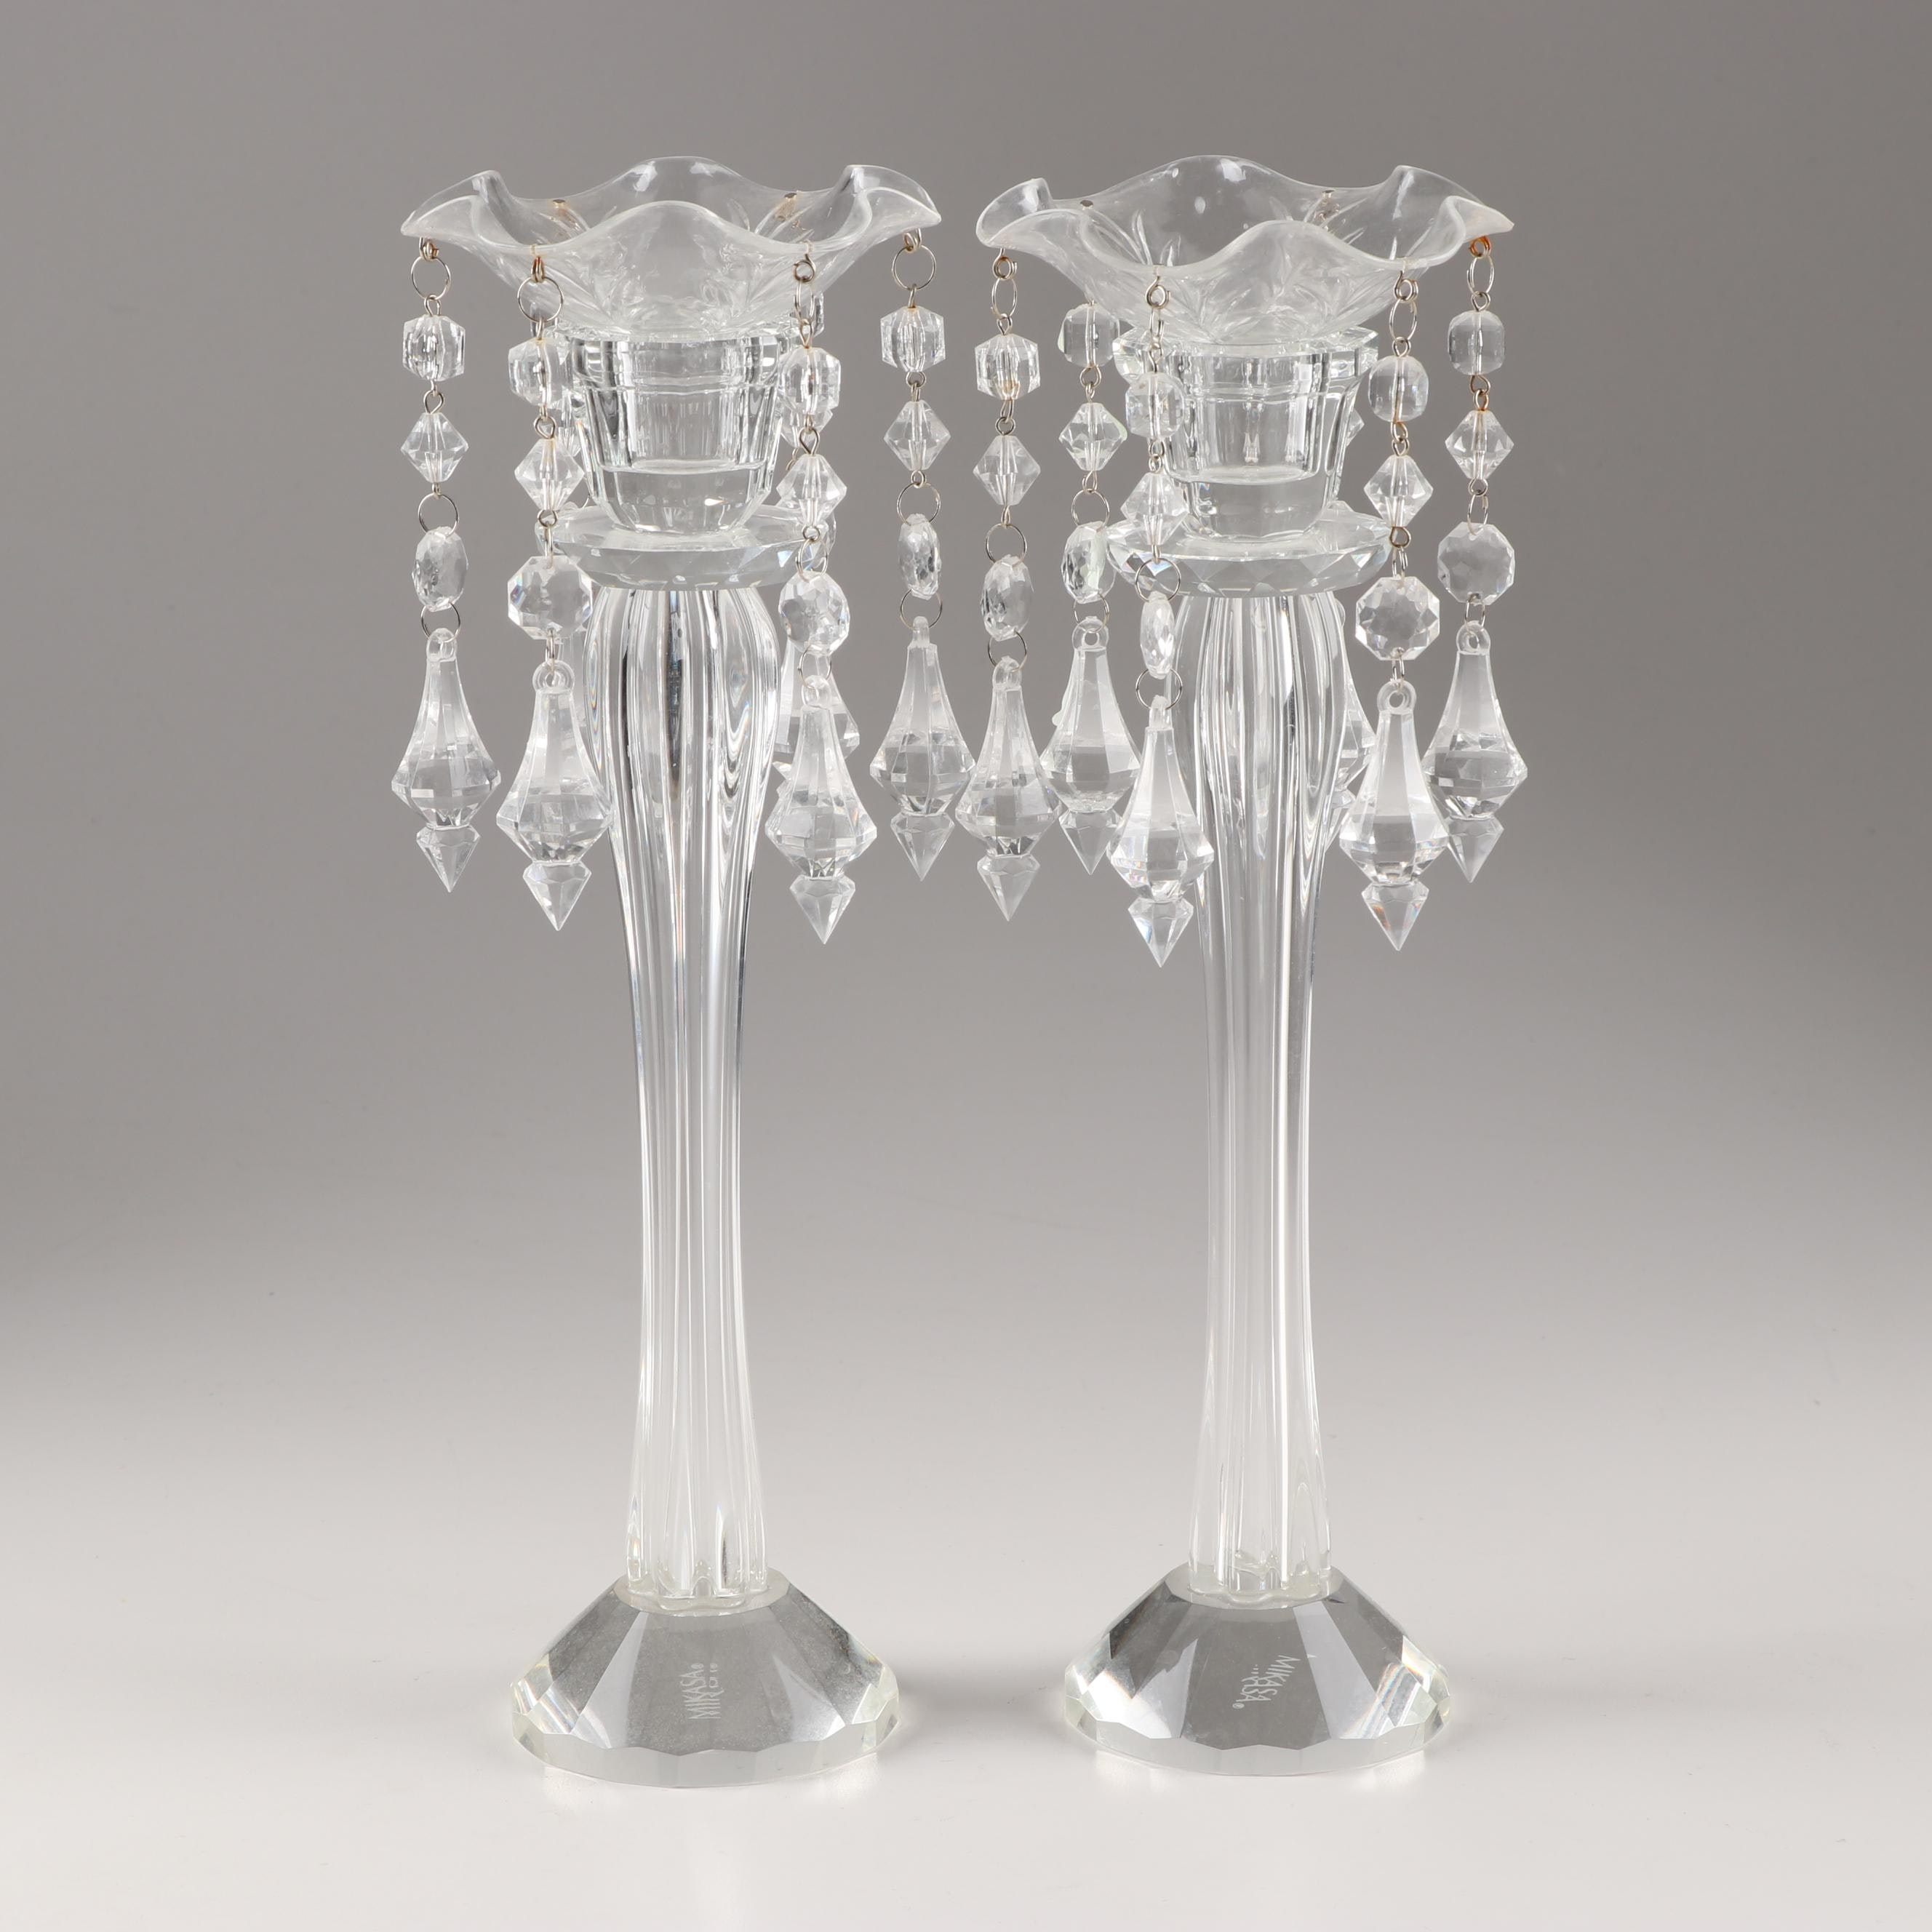 Mikasa Crystal Candlesticks with Hanging Prisms